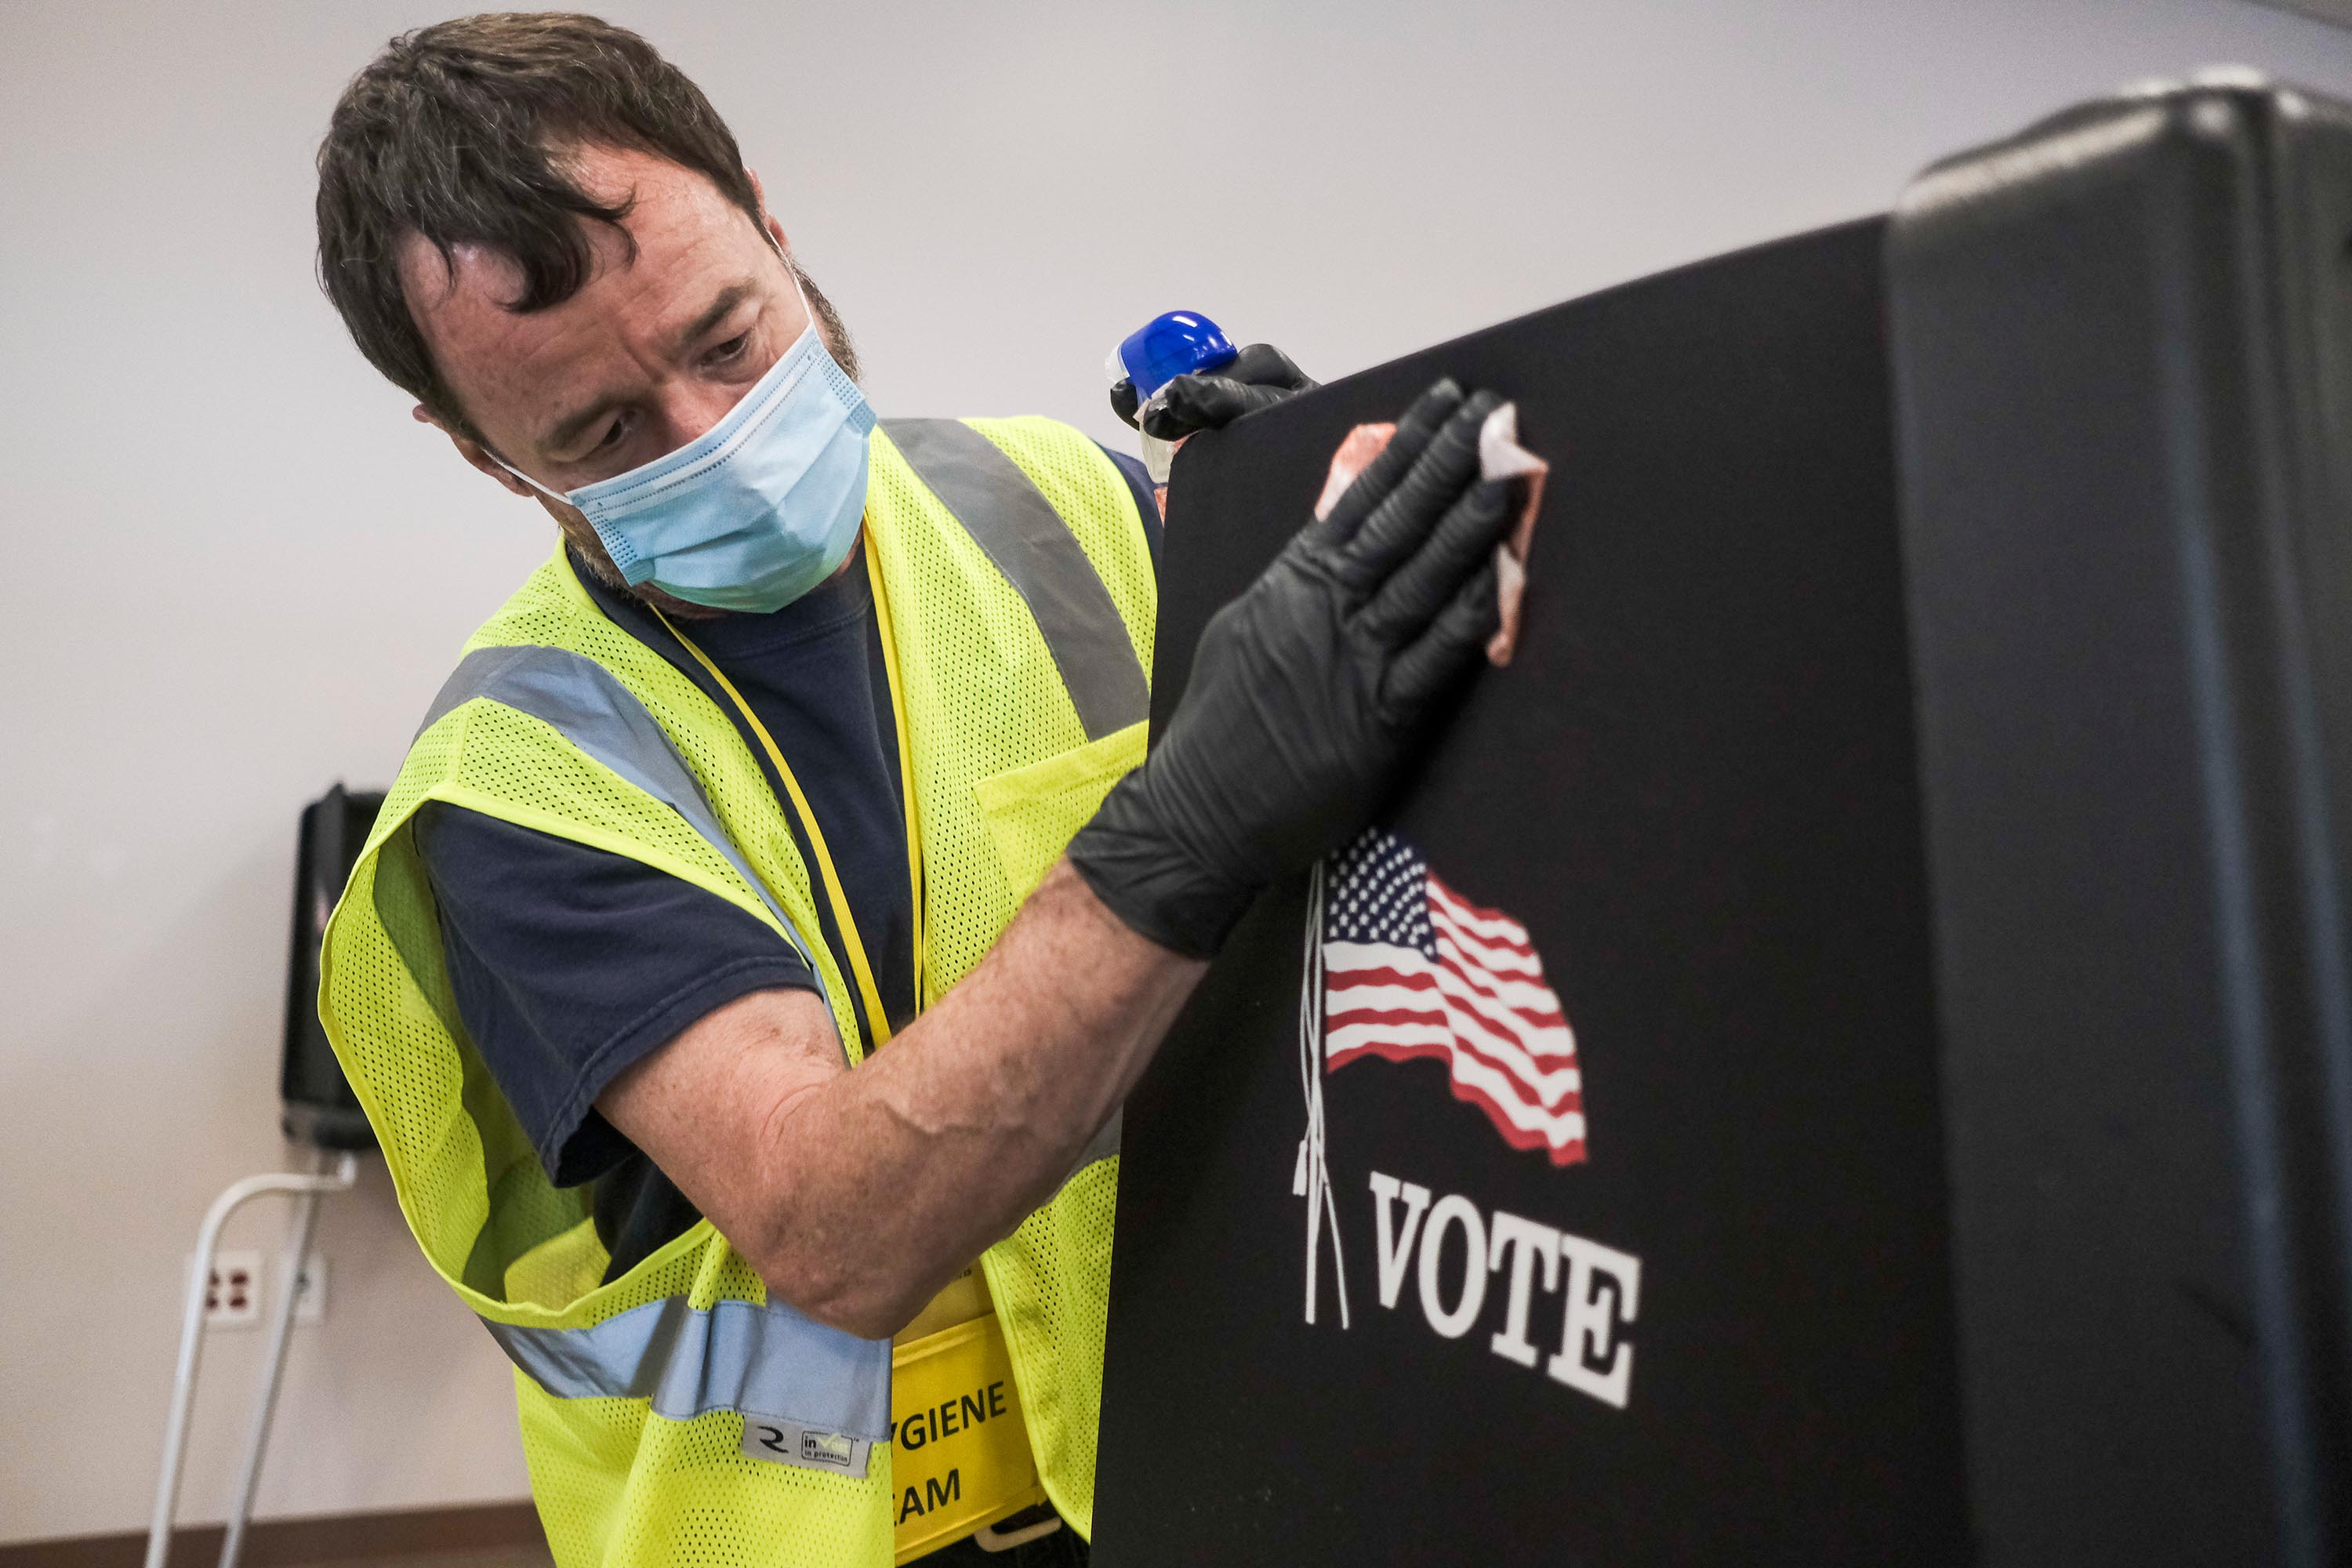 Ohio poll workers won't turn away voters who don't wear a mask